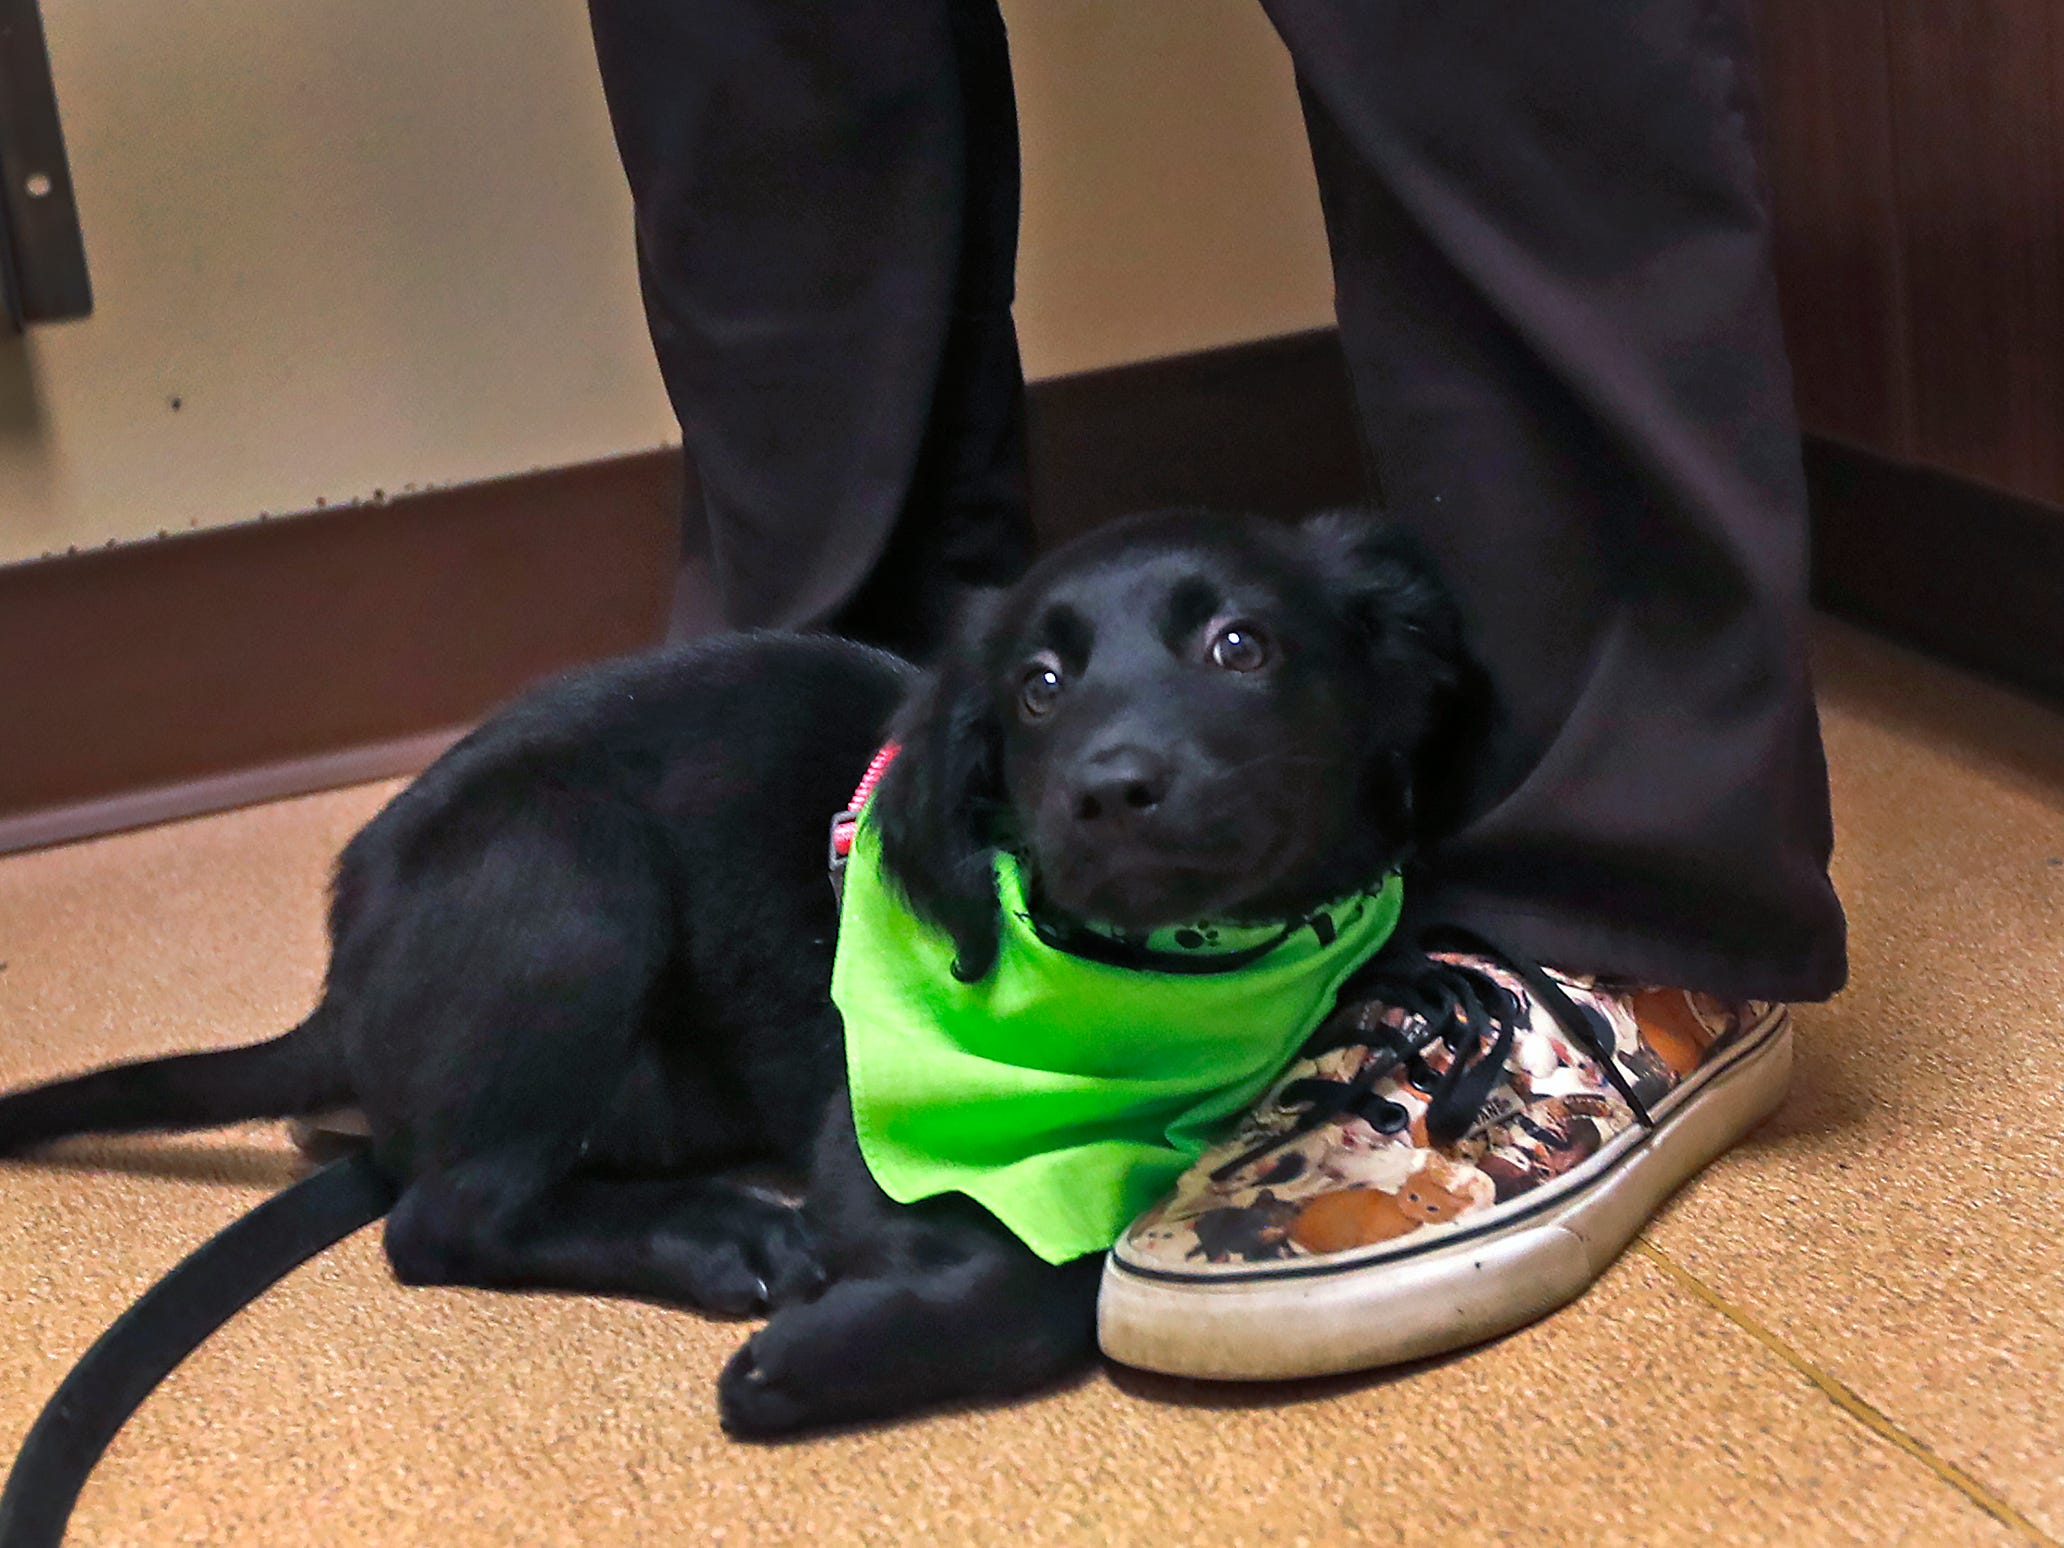 Maggie stops for a second, resting on veterinarian Dr. Penny Dowden's shoes, during her appointment at Paw Patch Place Animal Hospital, Friday, Aug. 31, 2018.  The veterinary clinic is the only one in Indiana to earn special fear free certification from an international program that aims to help vets reduce anxiety for pets prone to feel stressed in their offices.  Sprayed on this puppy's bandana is a dog pheromone used to calm dogs.